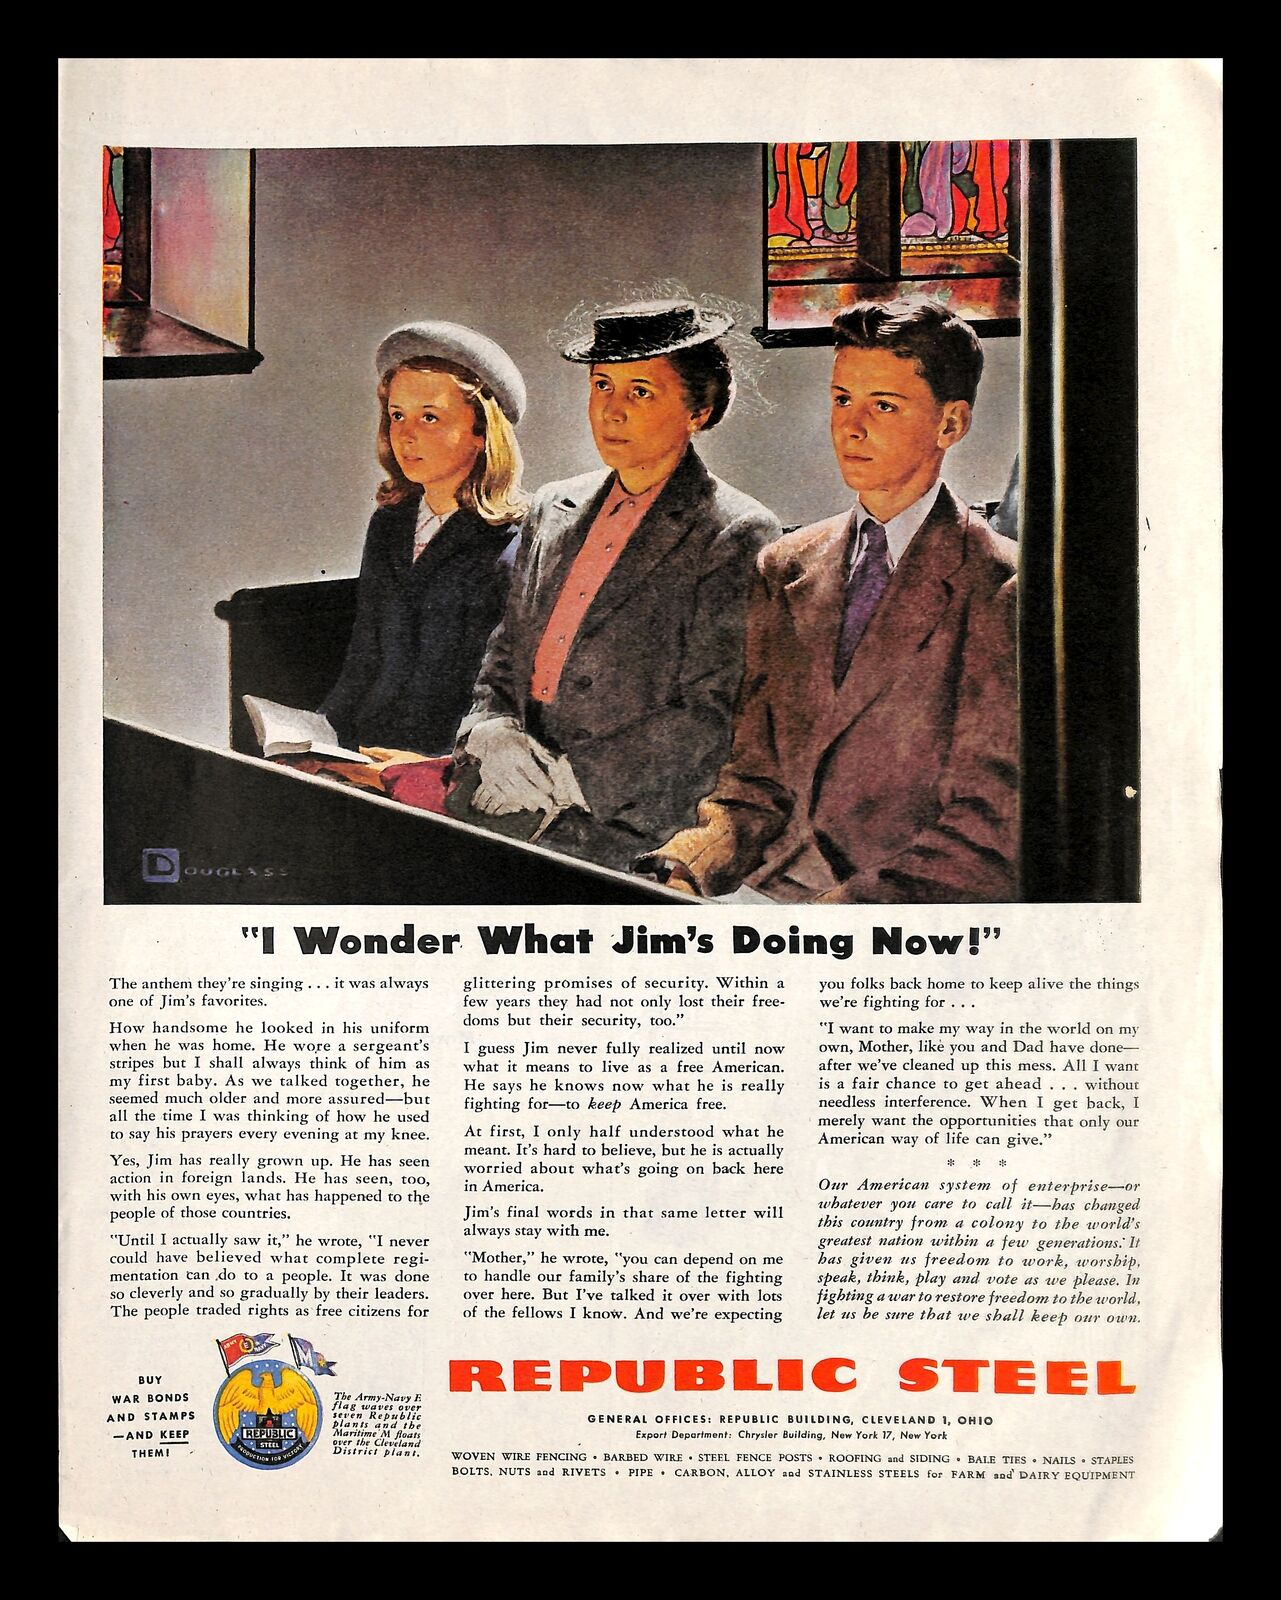 1944 Republic Steel Vintage Print Ad Church Service Ww2 Bonds Douglass Crockwell Ebay